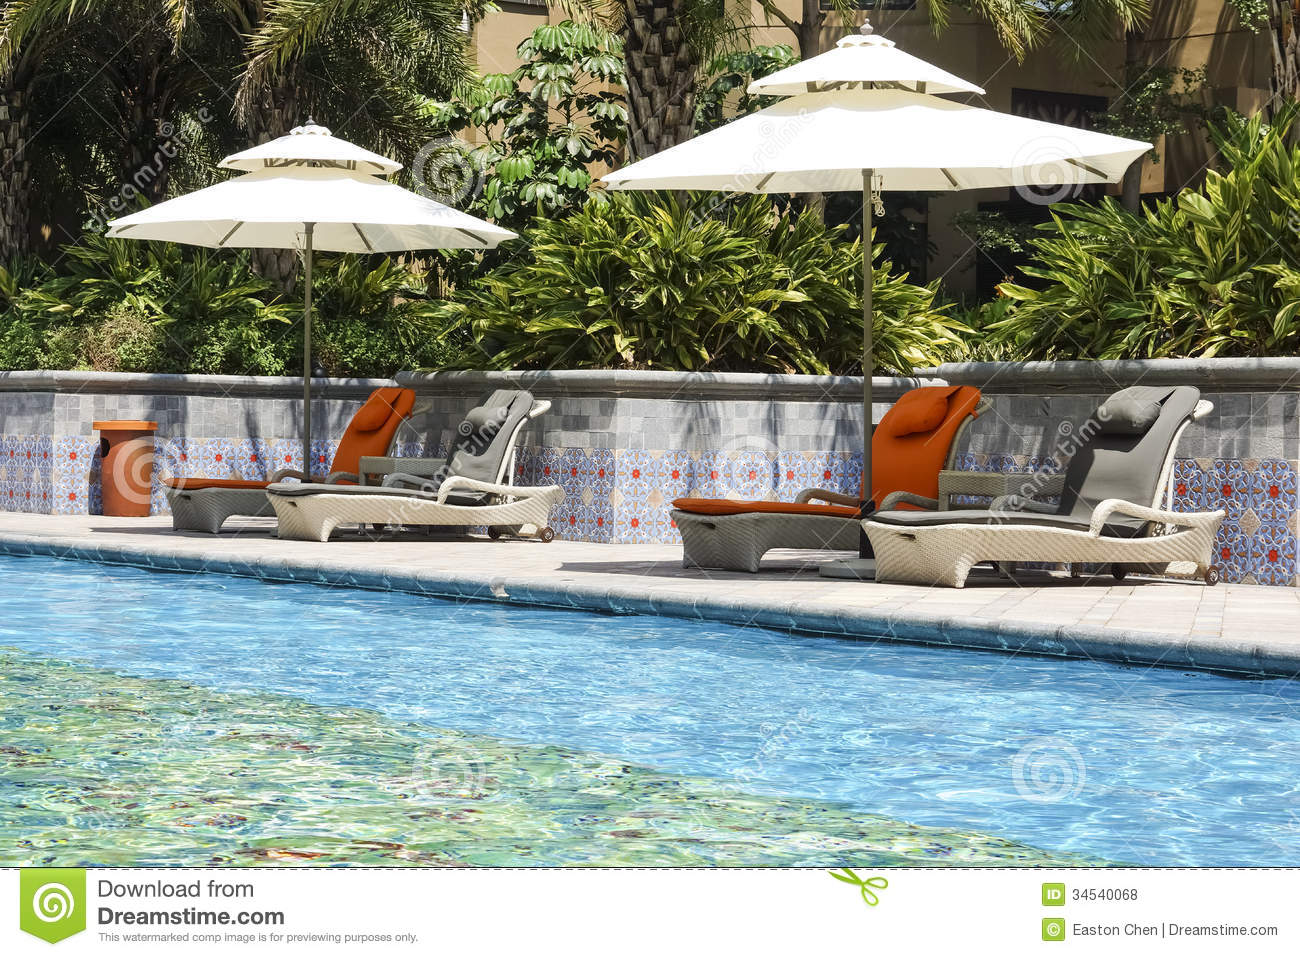 The Hotel Outdoor Swimming Pool Royalty Free Stock Photos Image 34540068